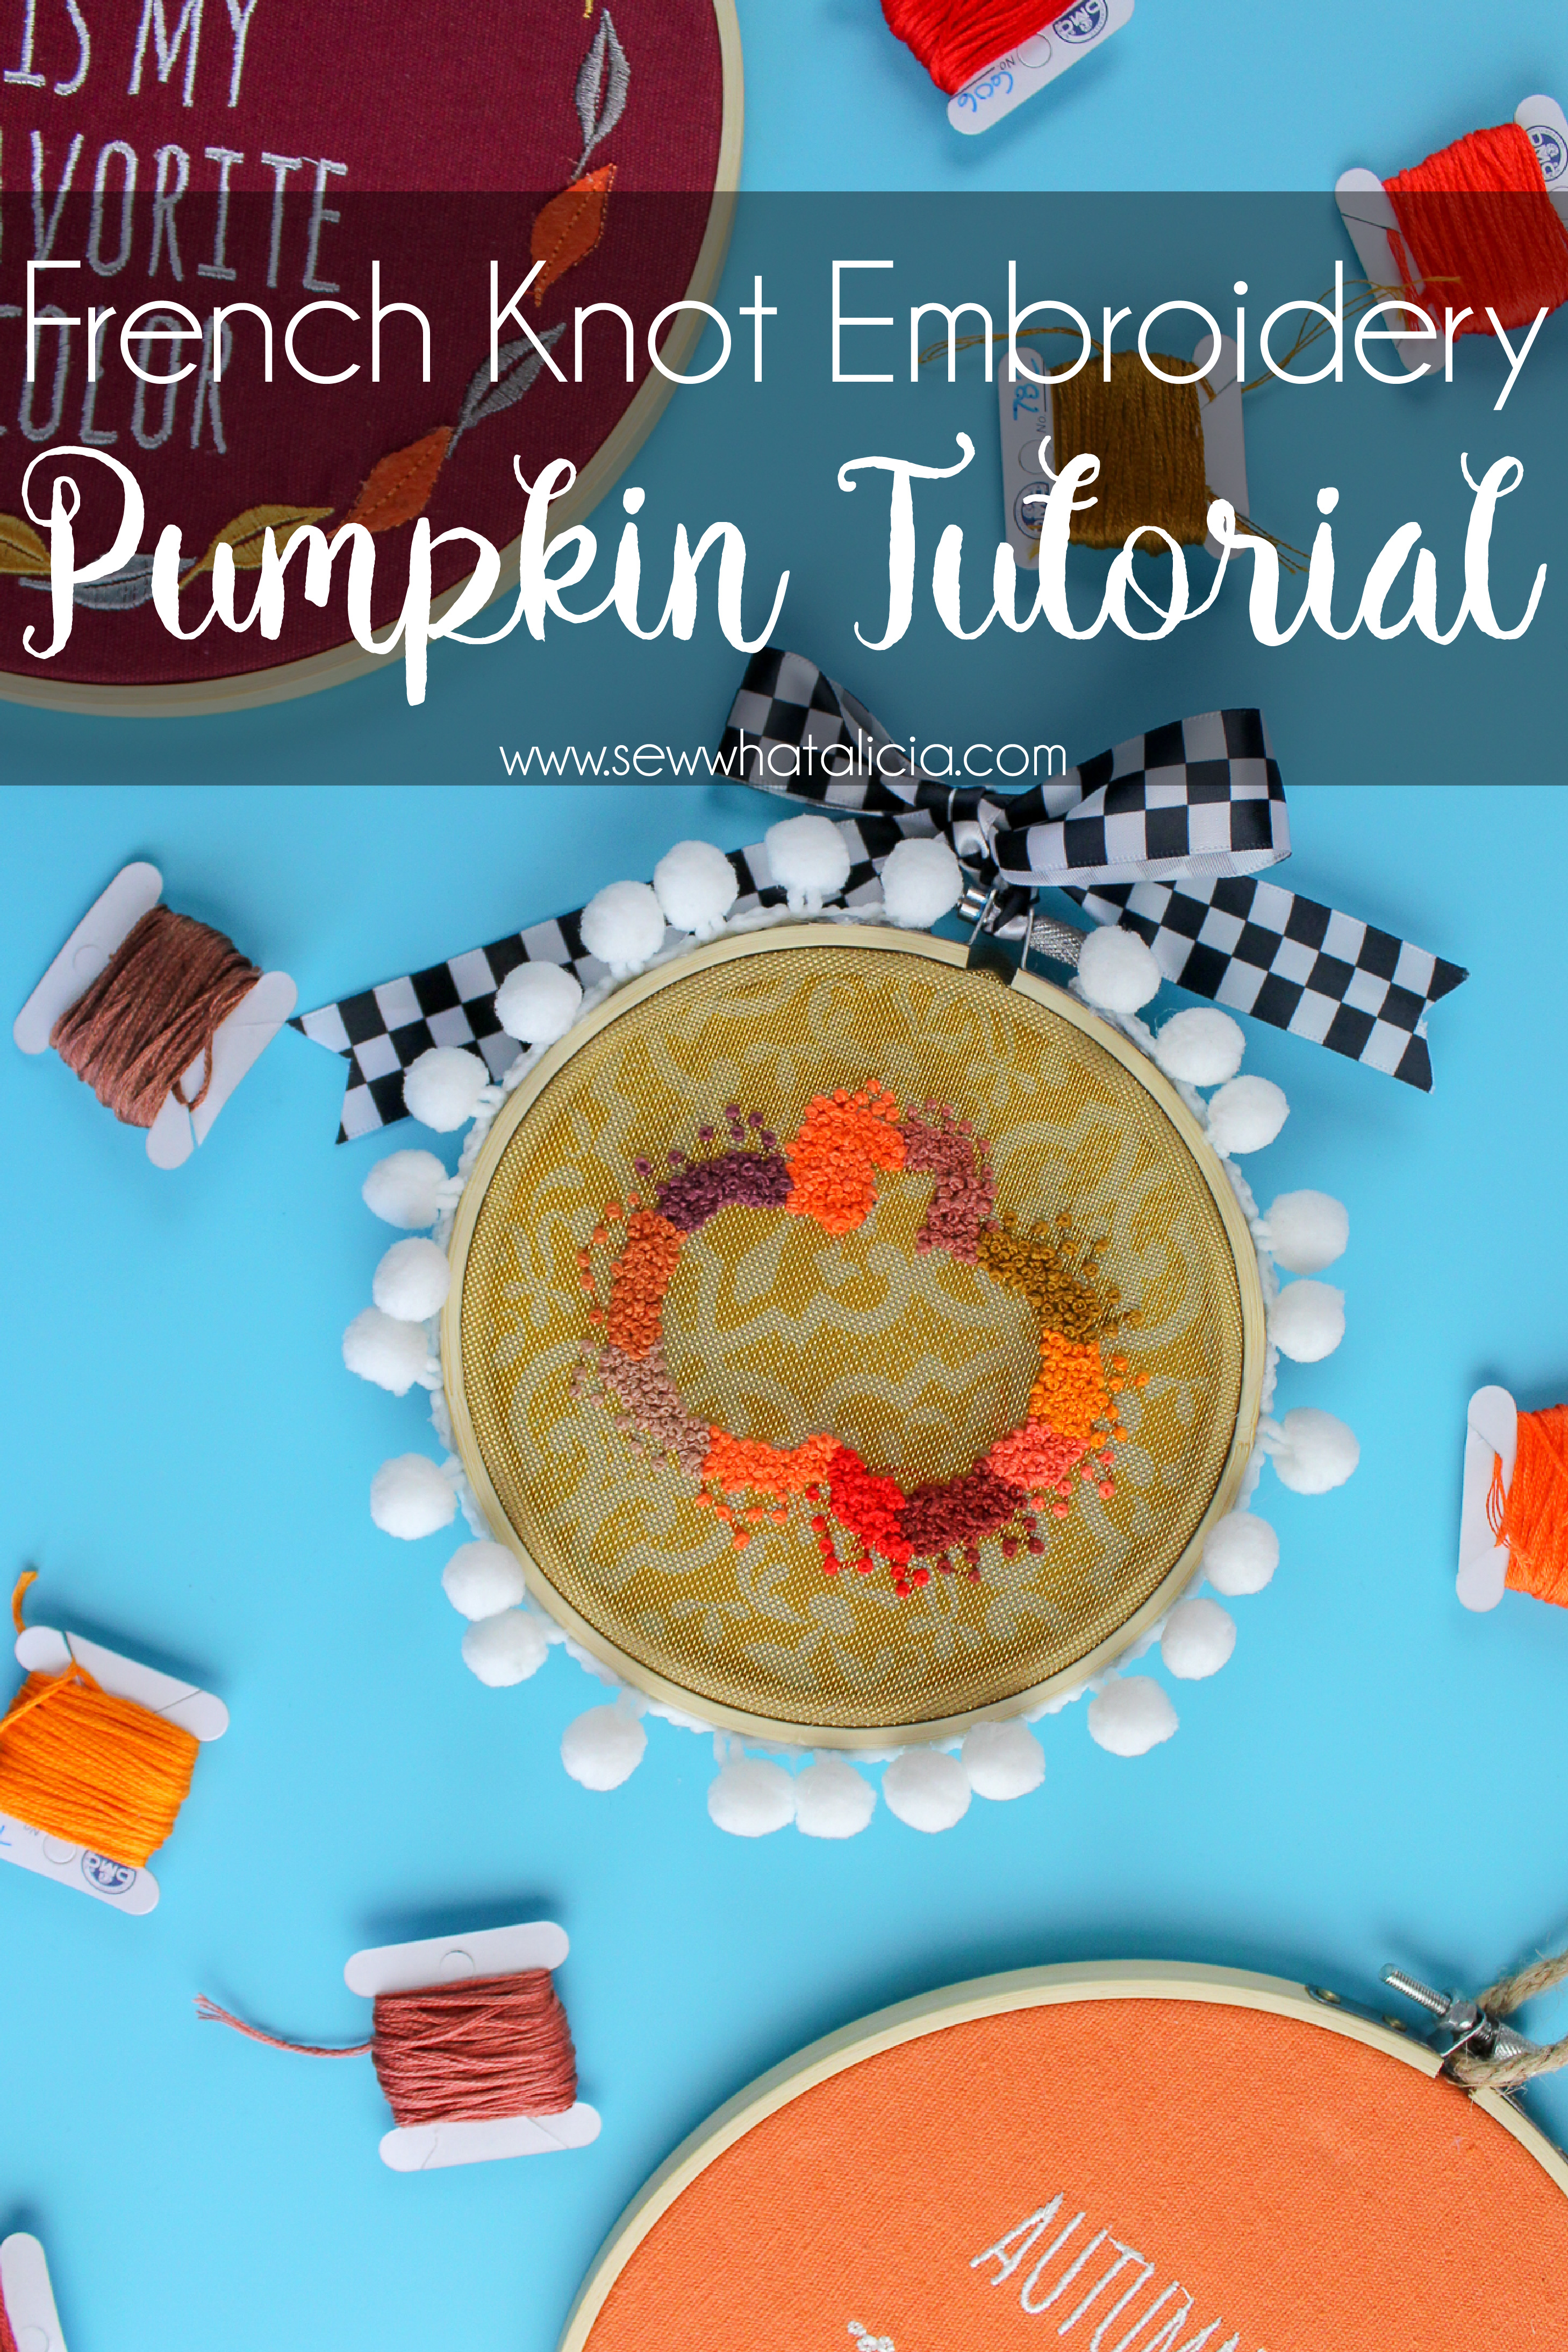 French Knot Embroidery Pumpkin Pattern And Tutorial Sew What Alicia